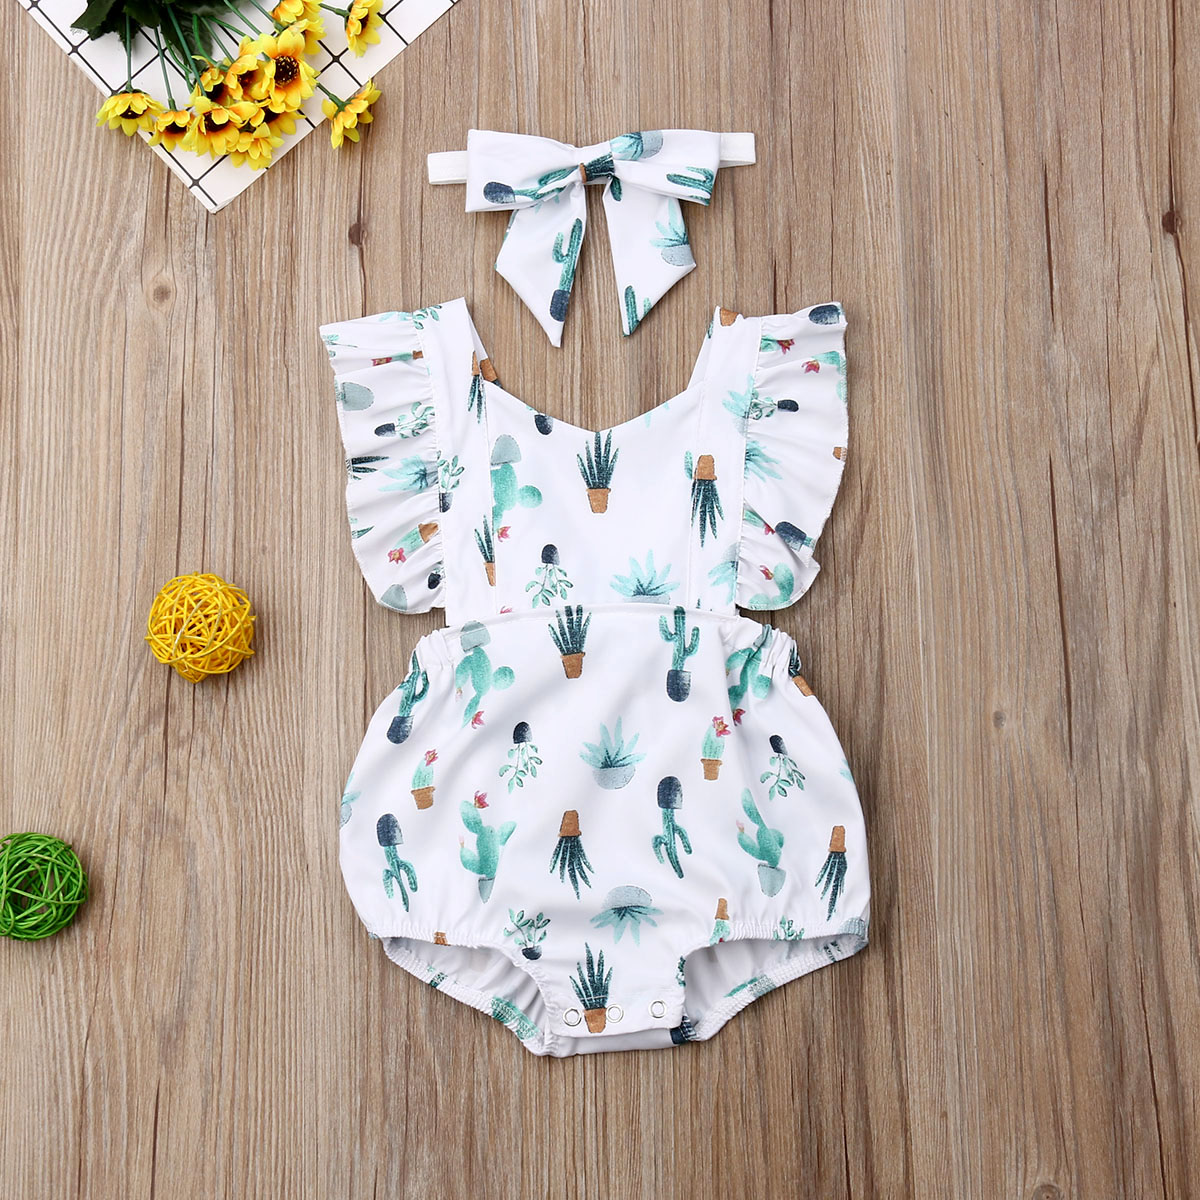 Pudcoco 2020 0-24M Infant Newborn Baby Girls Ruffles Rompers Cactus Print Jumpsuit Summer Costumes Baby Clothes